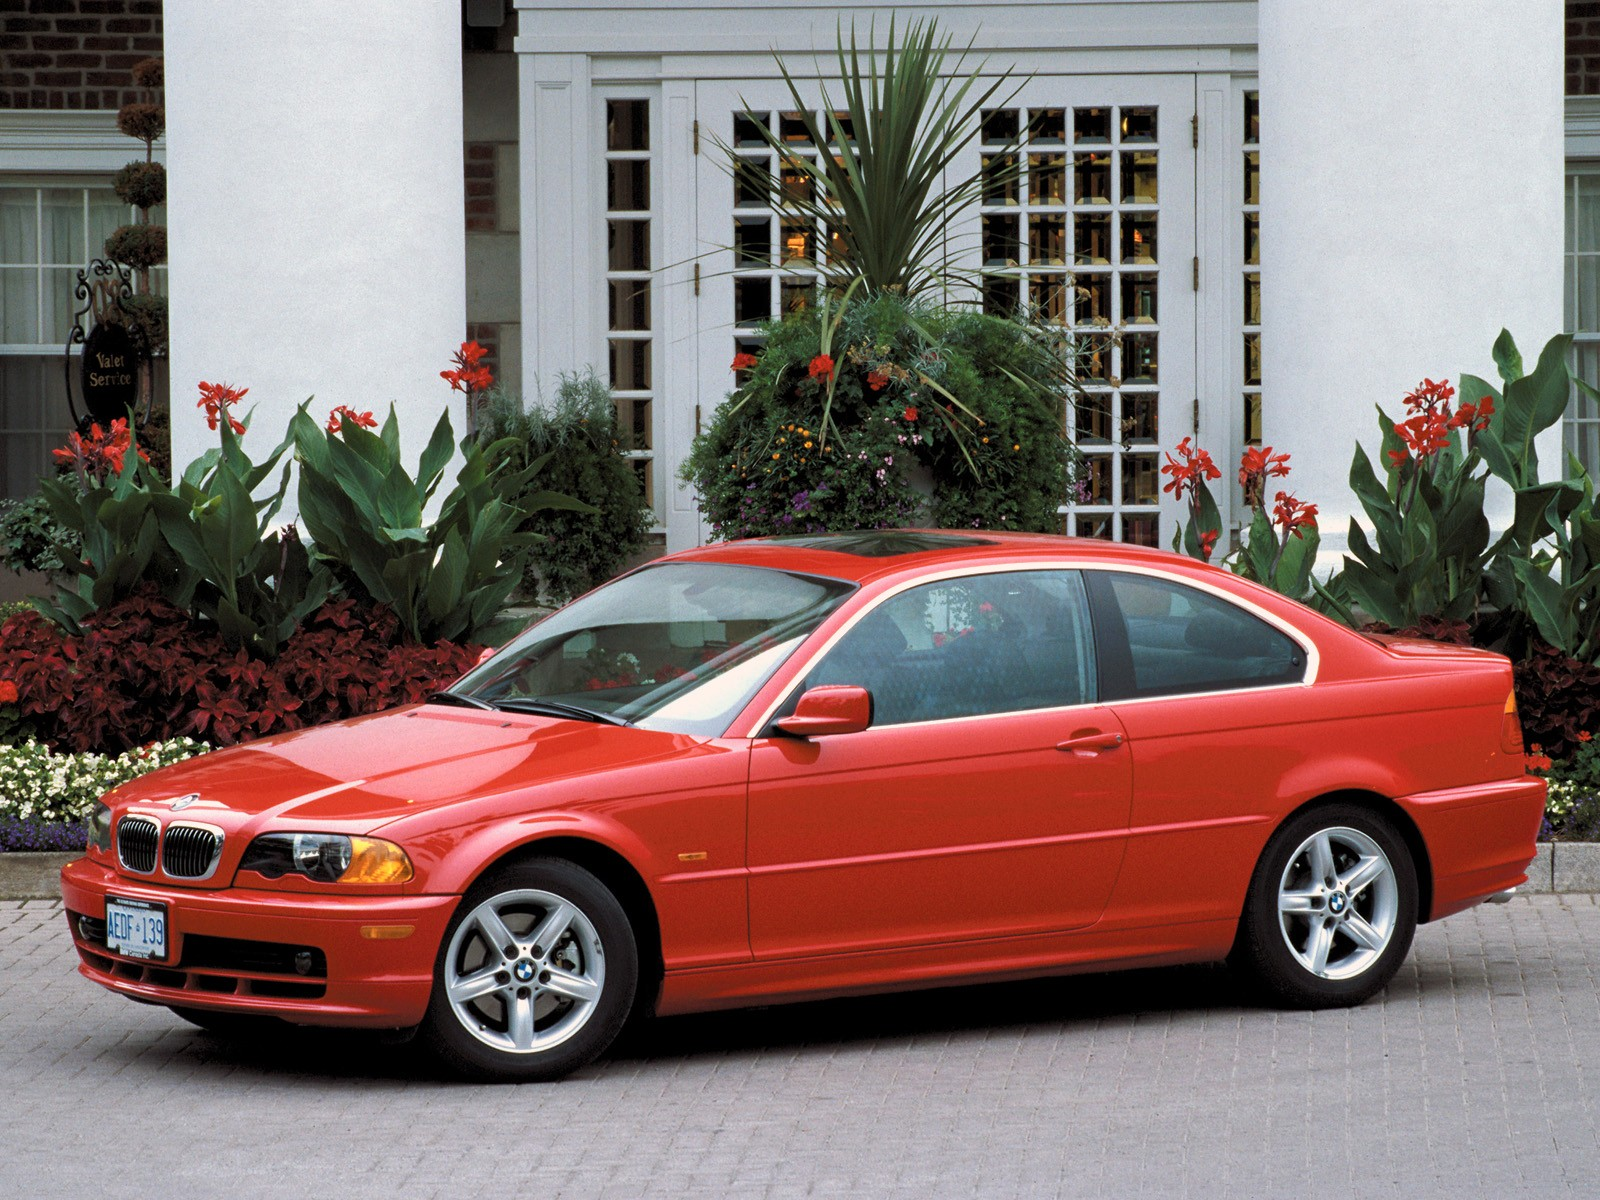 BMW 3 Series Coupe (E46) specs - 1999, 2000, 2001, 2002, 2003 - autoevolution